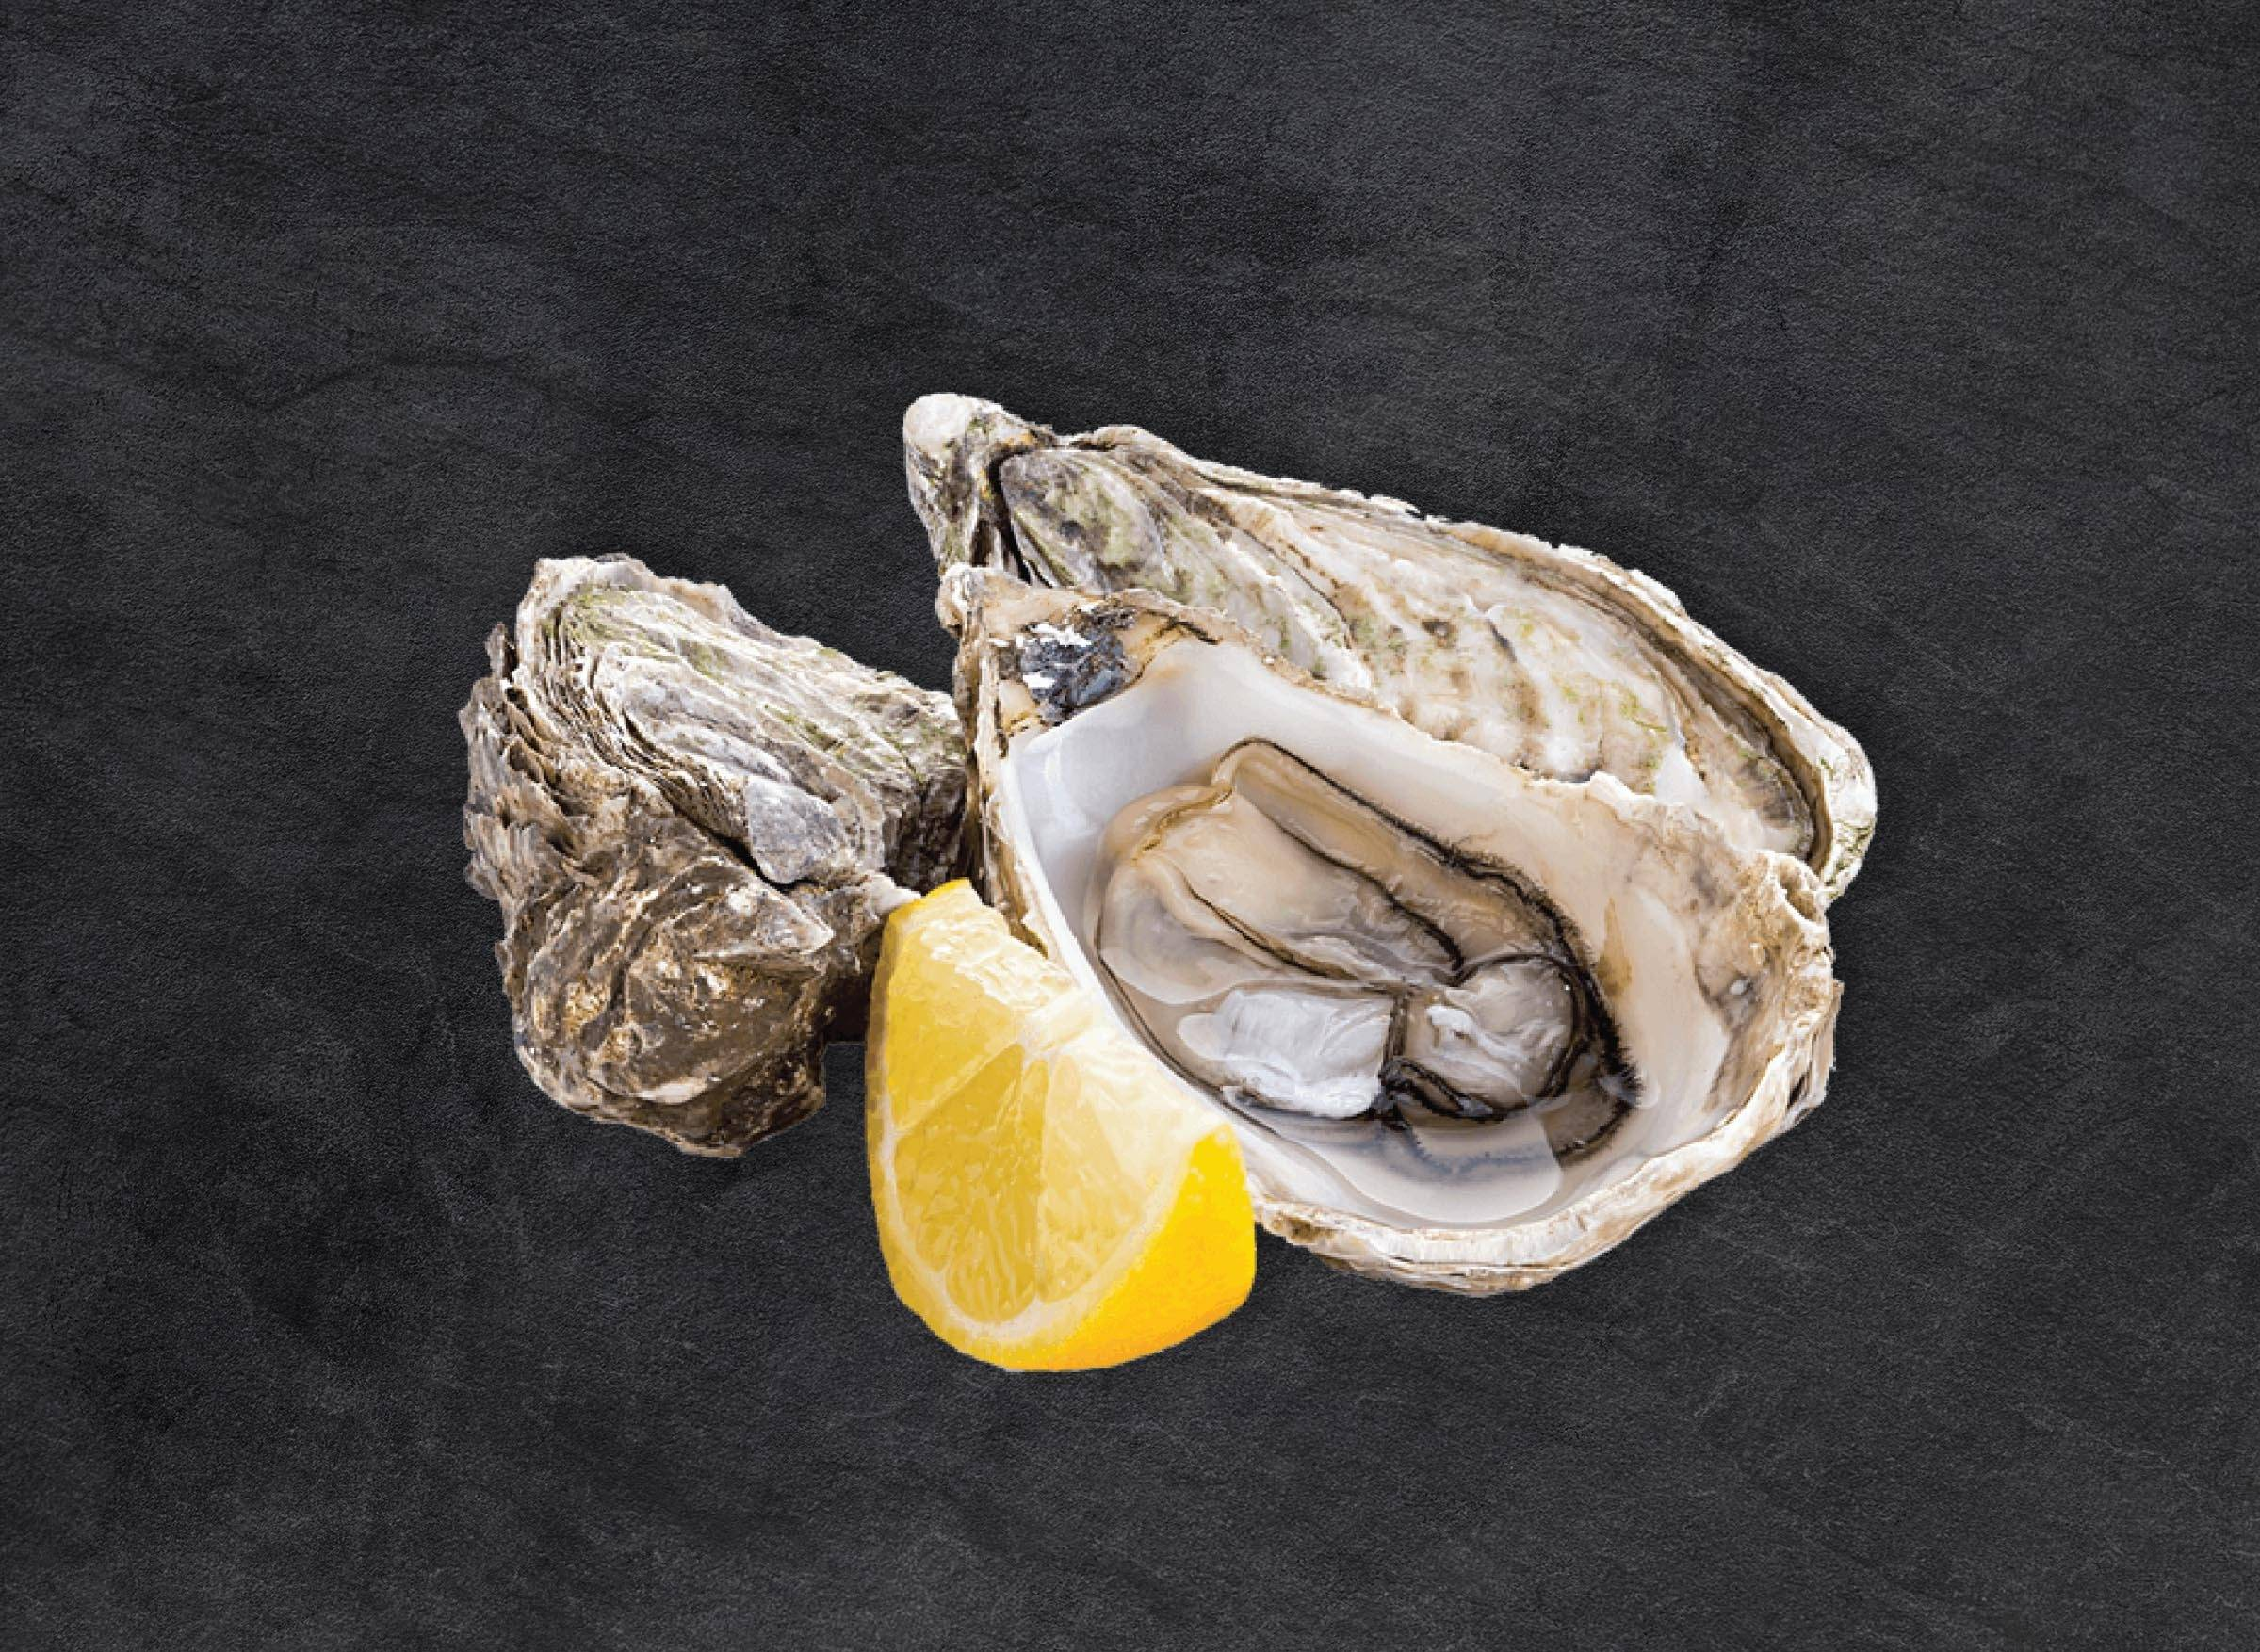 10 x Canadian Oysters